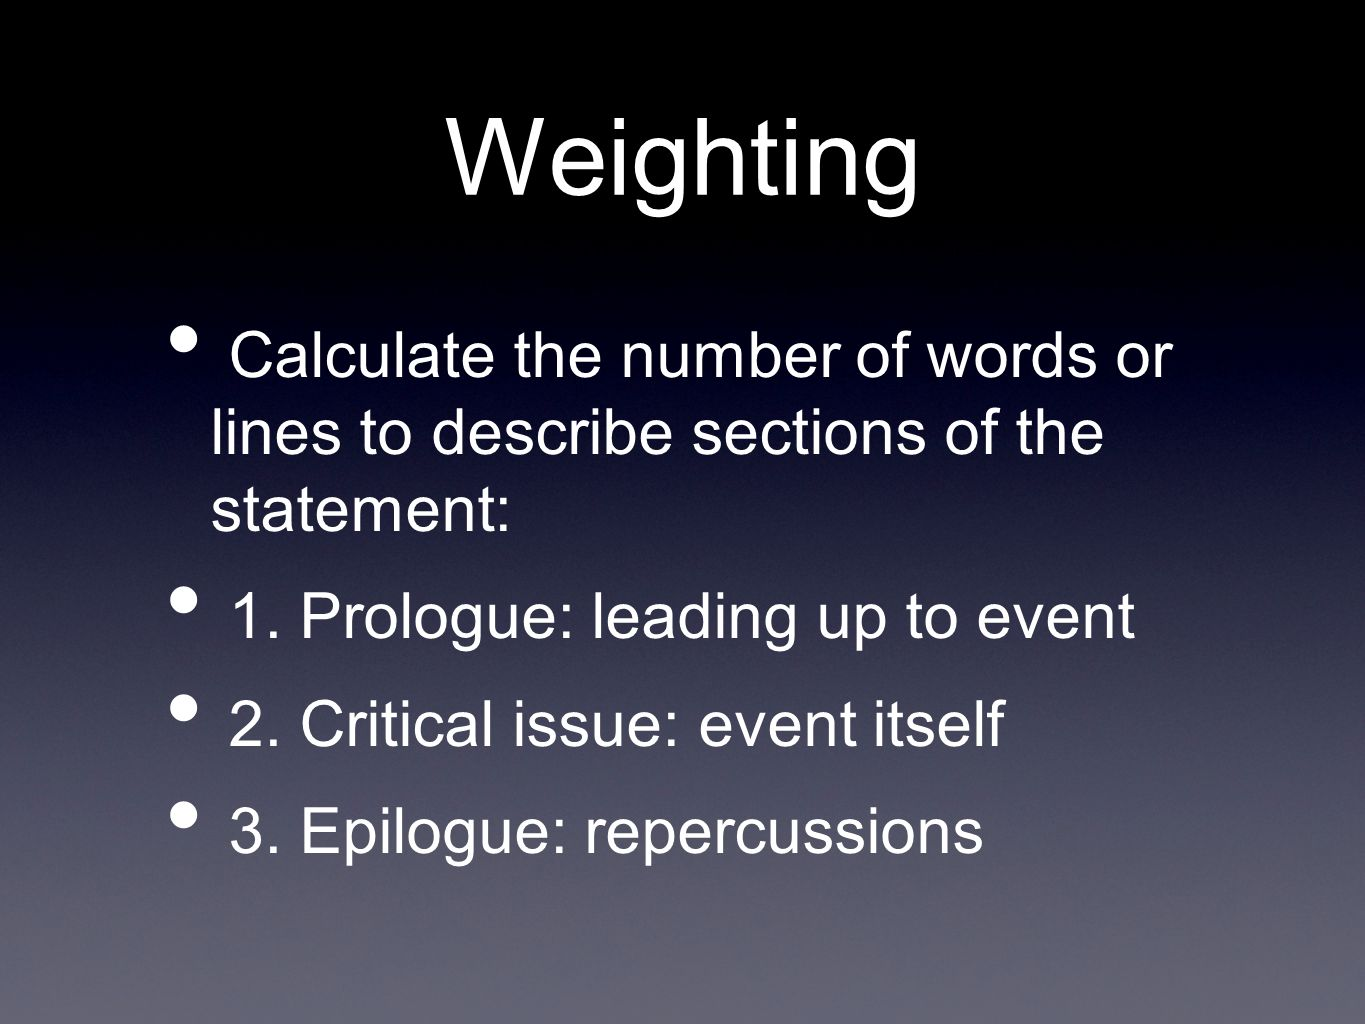 WeightingCalculate the number of words or lines to describe sections of the statement: 1. Prologue: leading up to event.